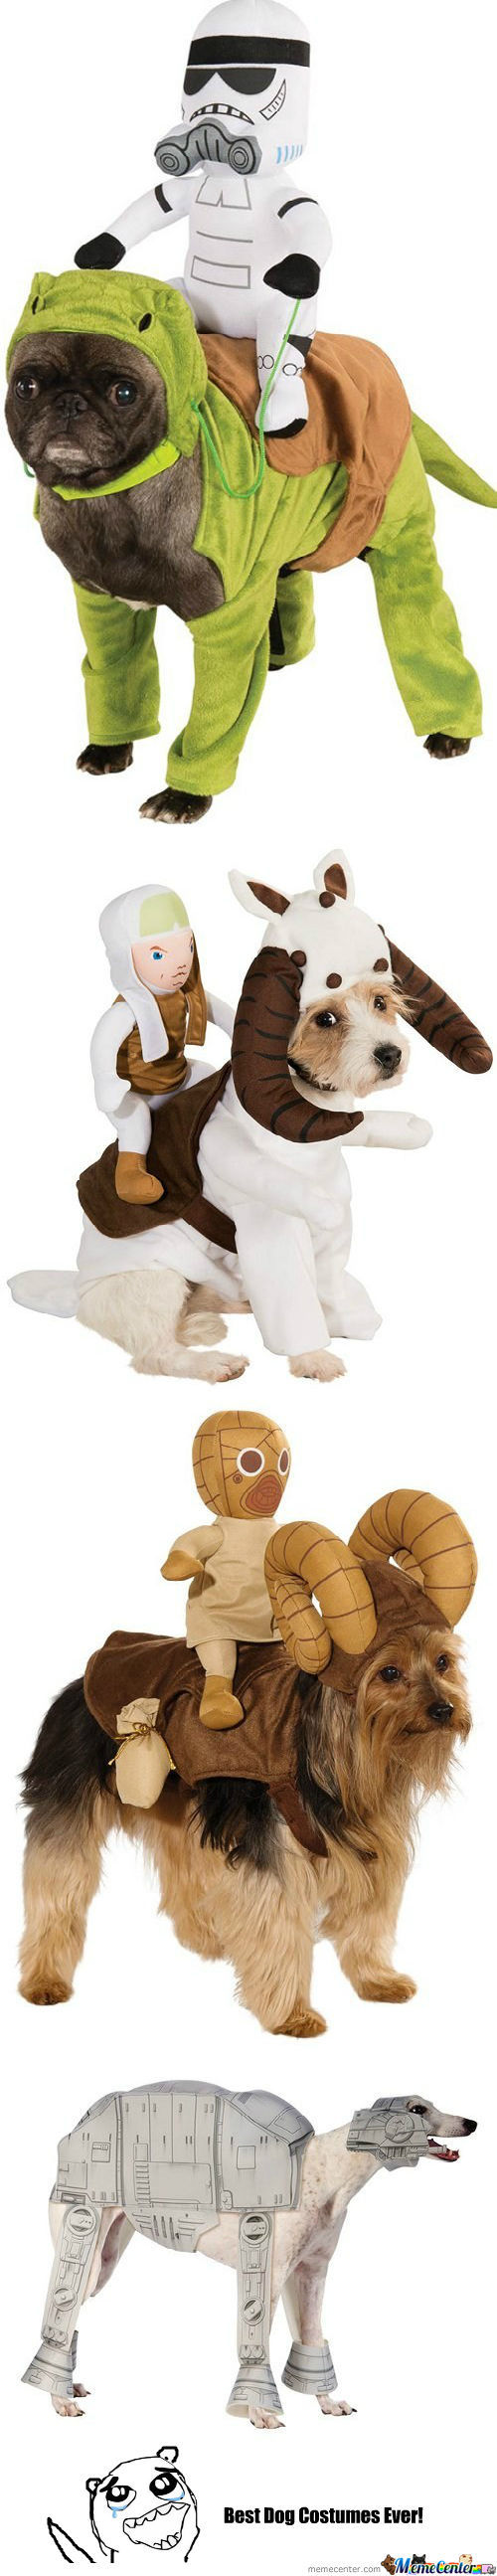 Best Dog Costumes Ever!